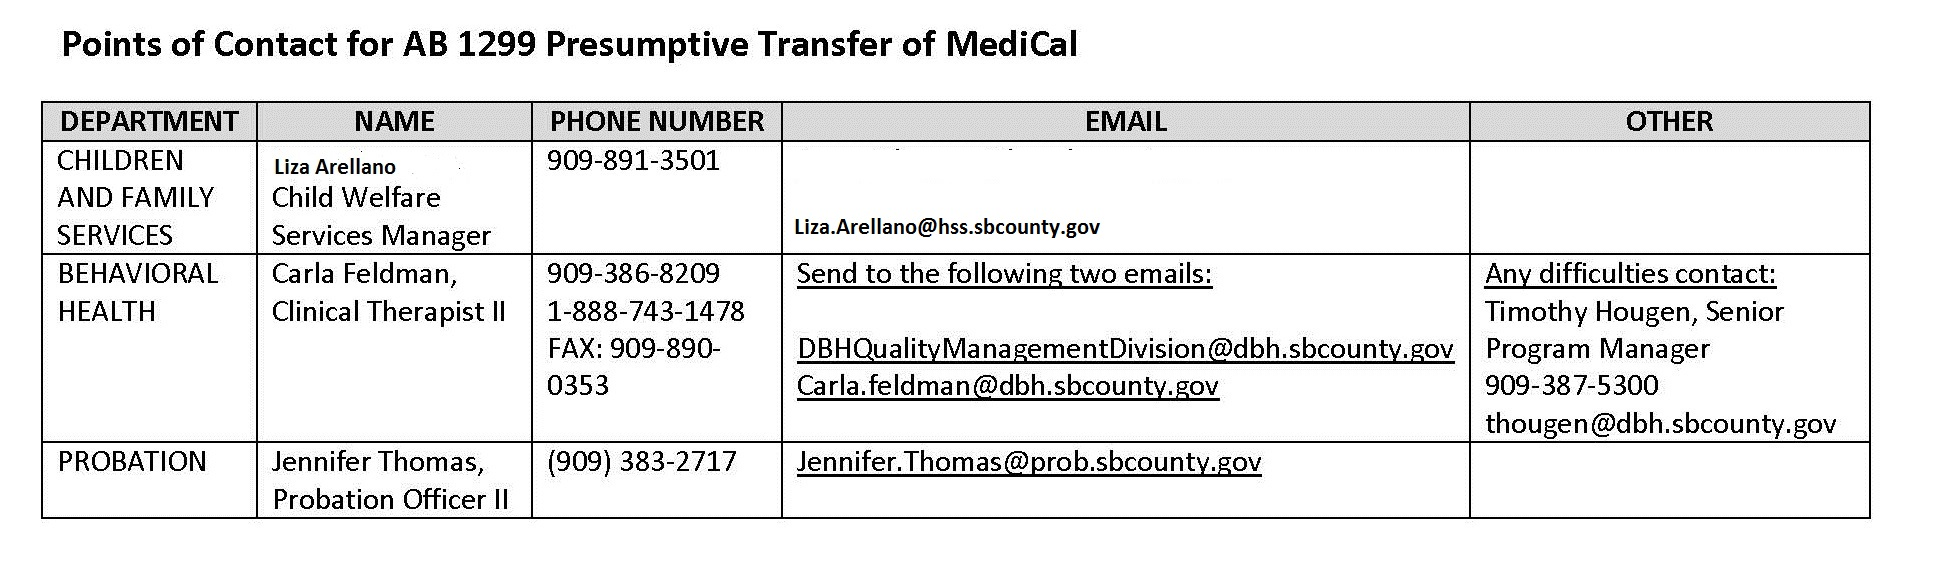 Single Points of Contact for AB 1299 Presumptive Transfer medical.jpg